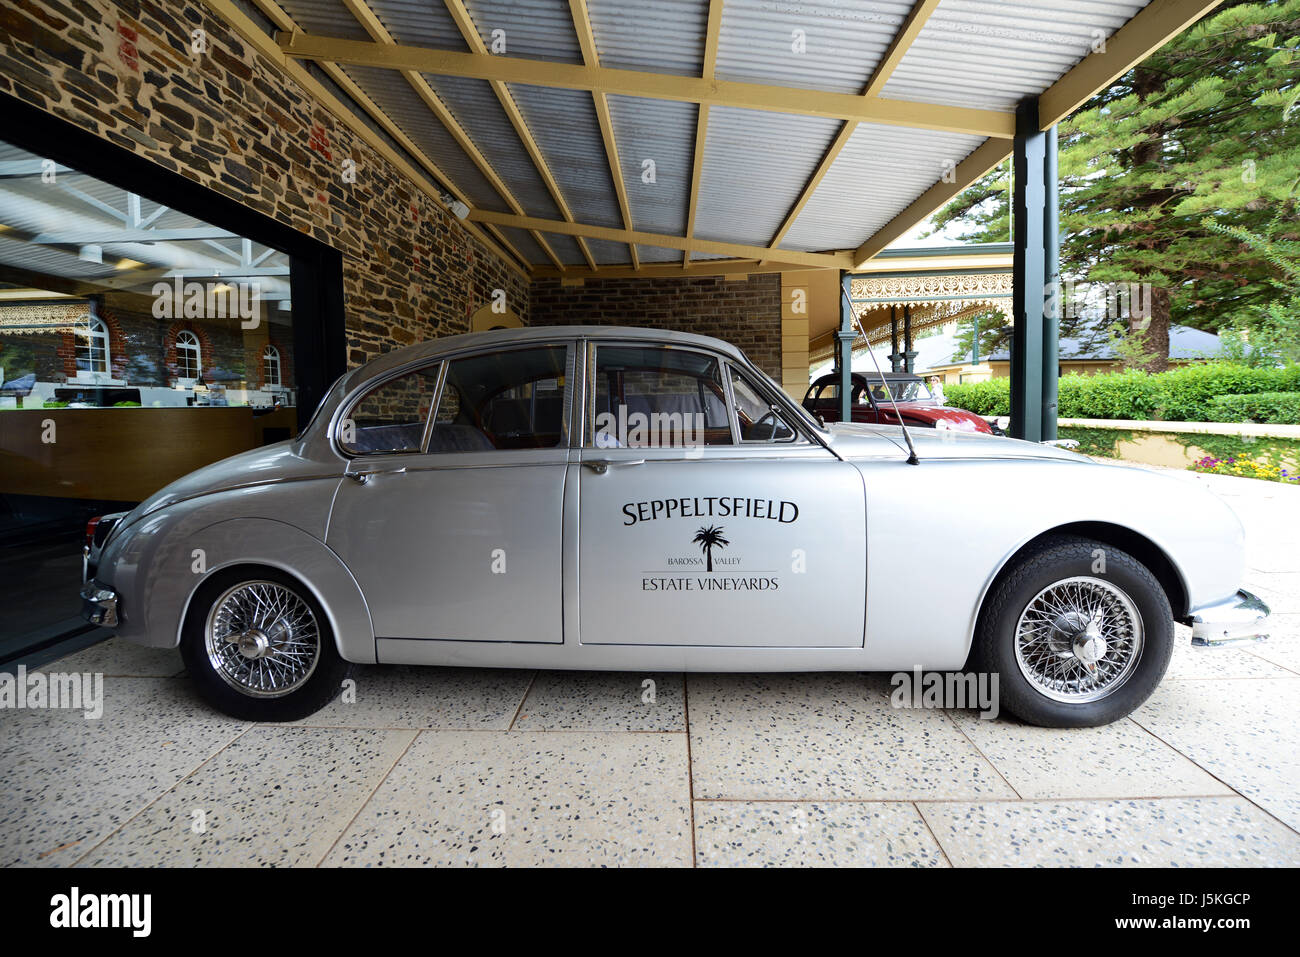 Old classical cars at the Seppeltsfield wine estate Stock Photo ...